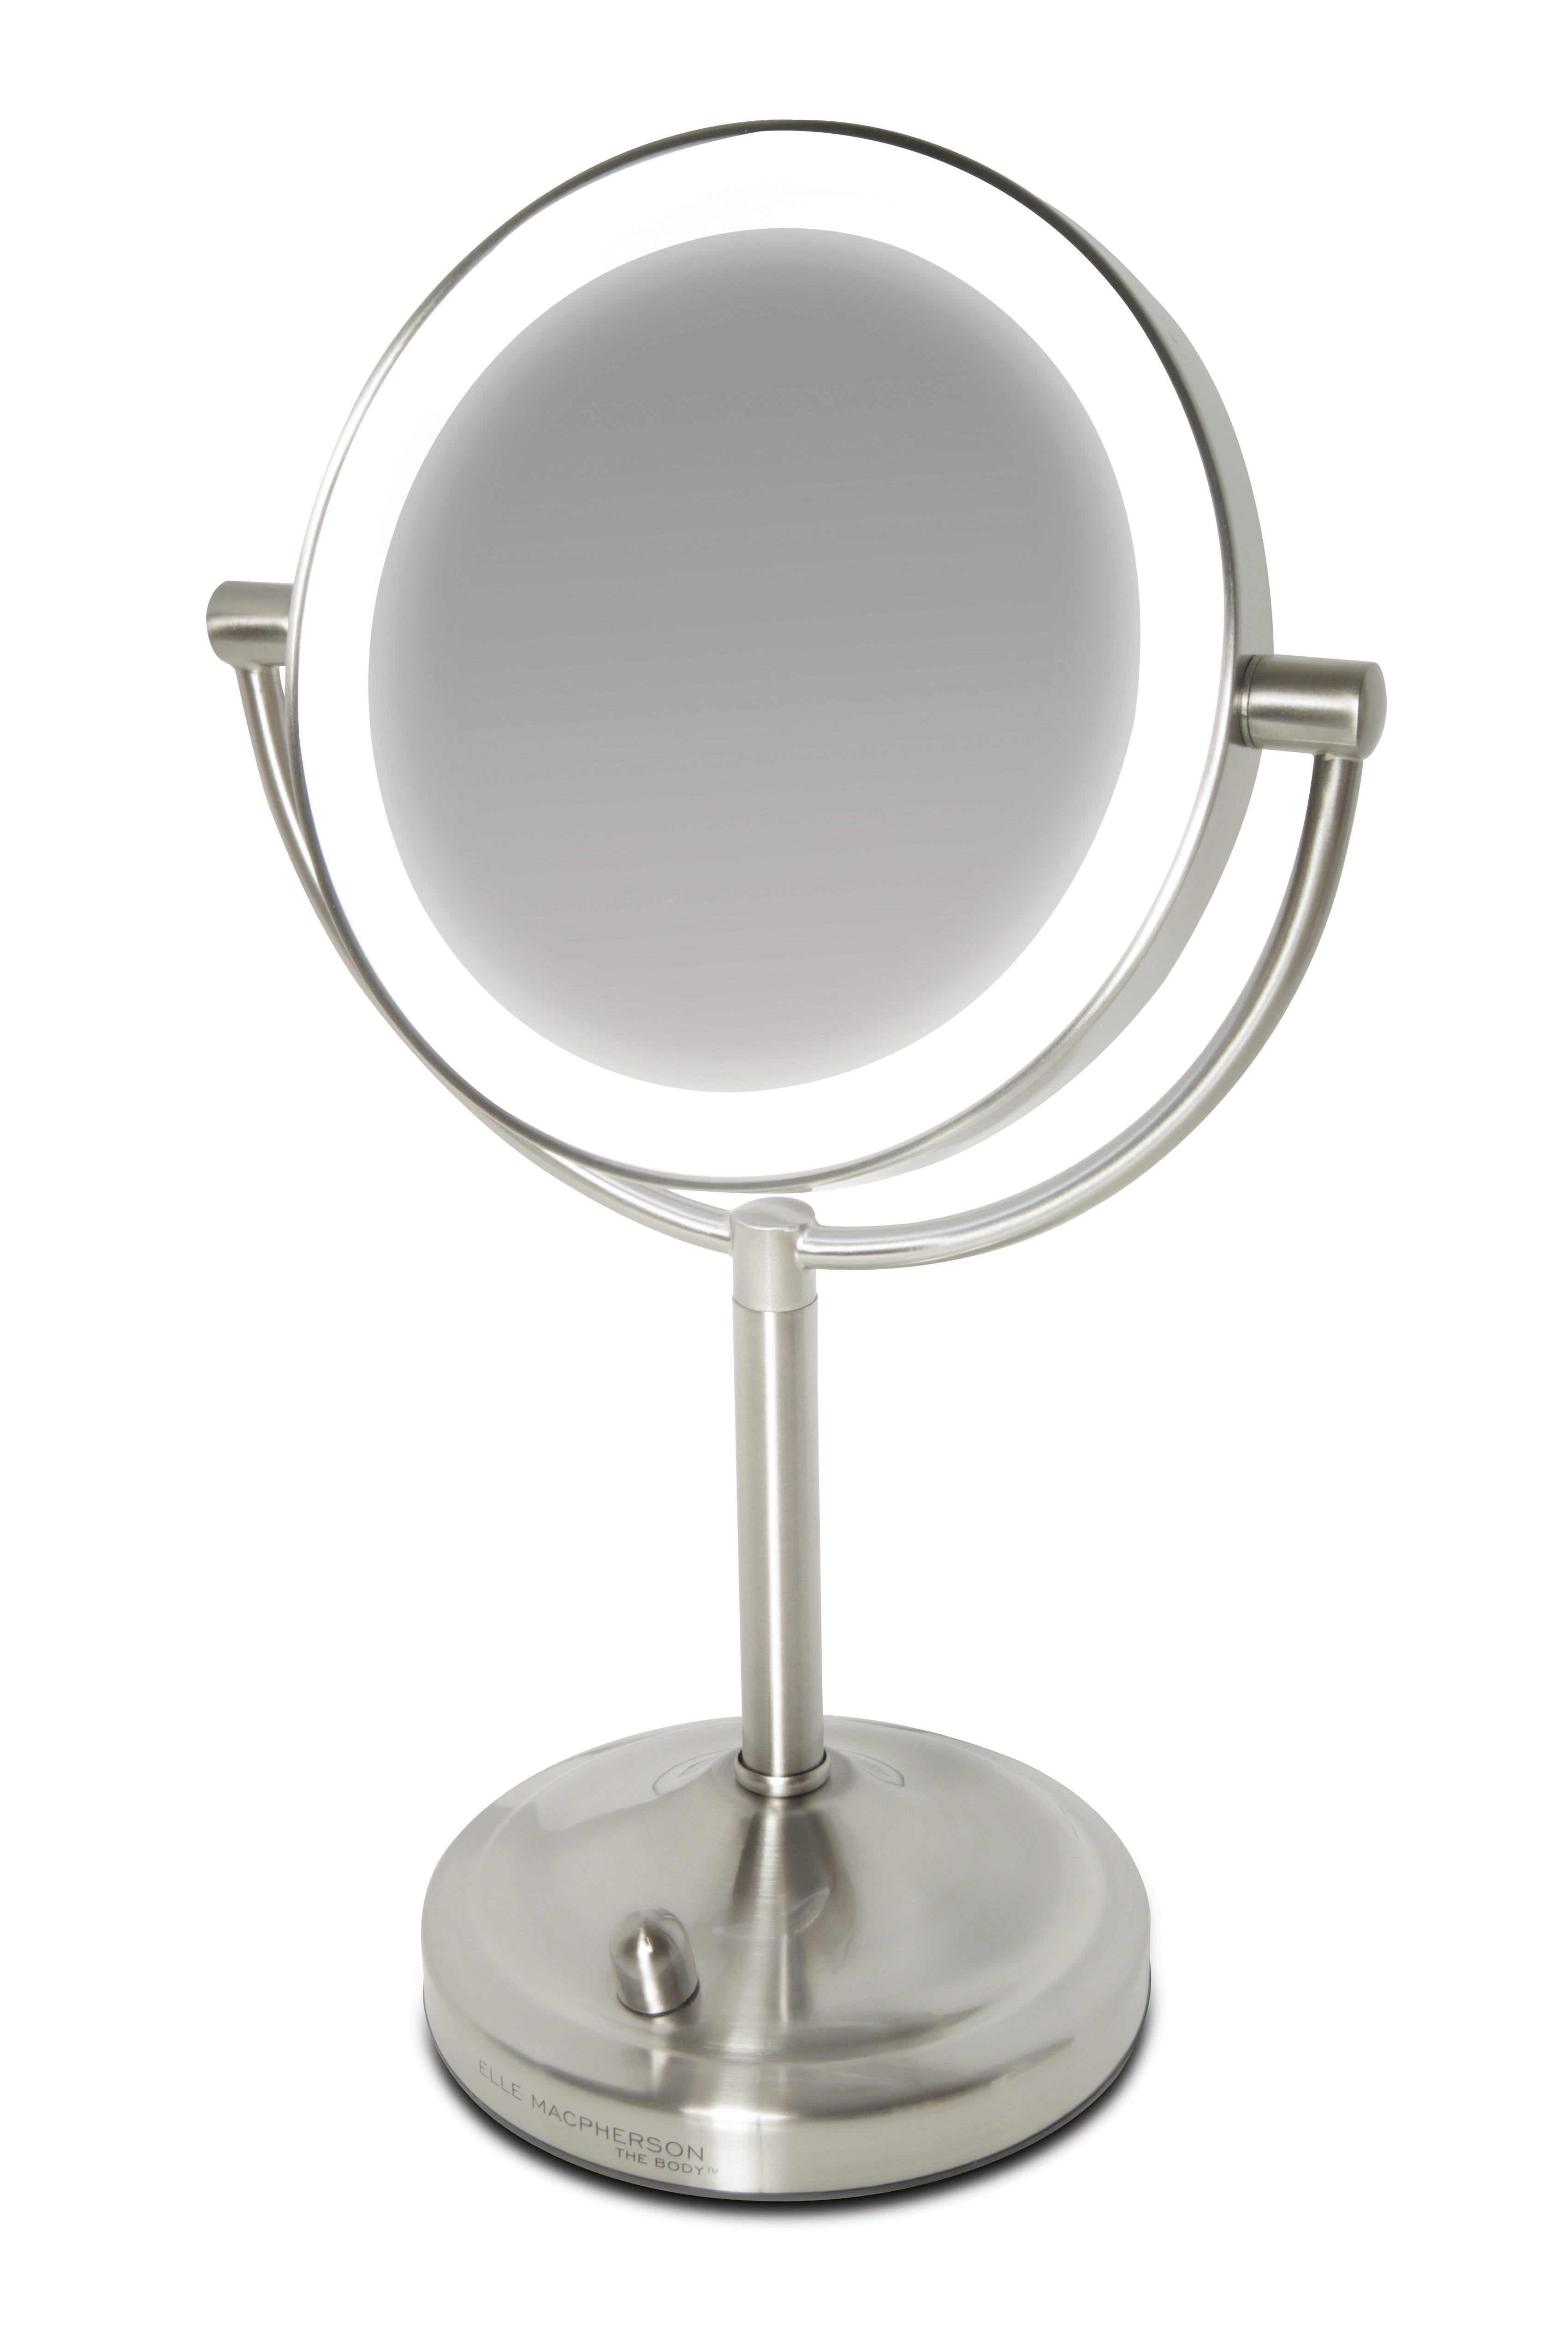 Elle macpherson illuminated beauty mirror mirror with for Mirror with lights